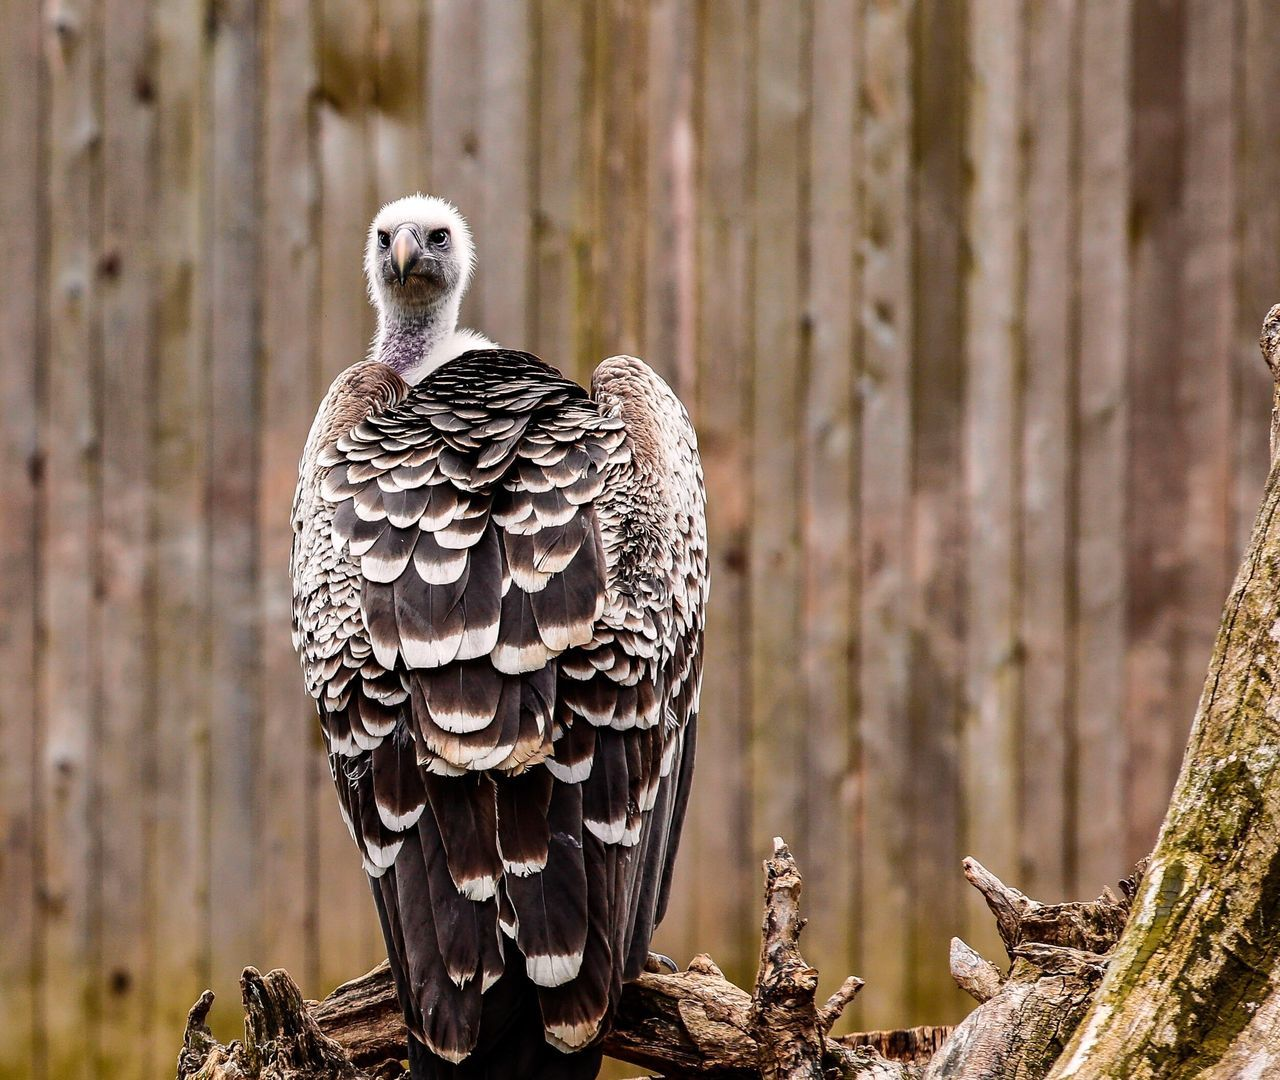 Focus On Foreground Animals In The Wild Animal Wildlife Bird No People Animal Themes Nature Outdoors Day One Animal Bird Of Prey Perching Close-up Beauty In Nature JGLowe Curiosity Stink Eye